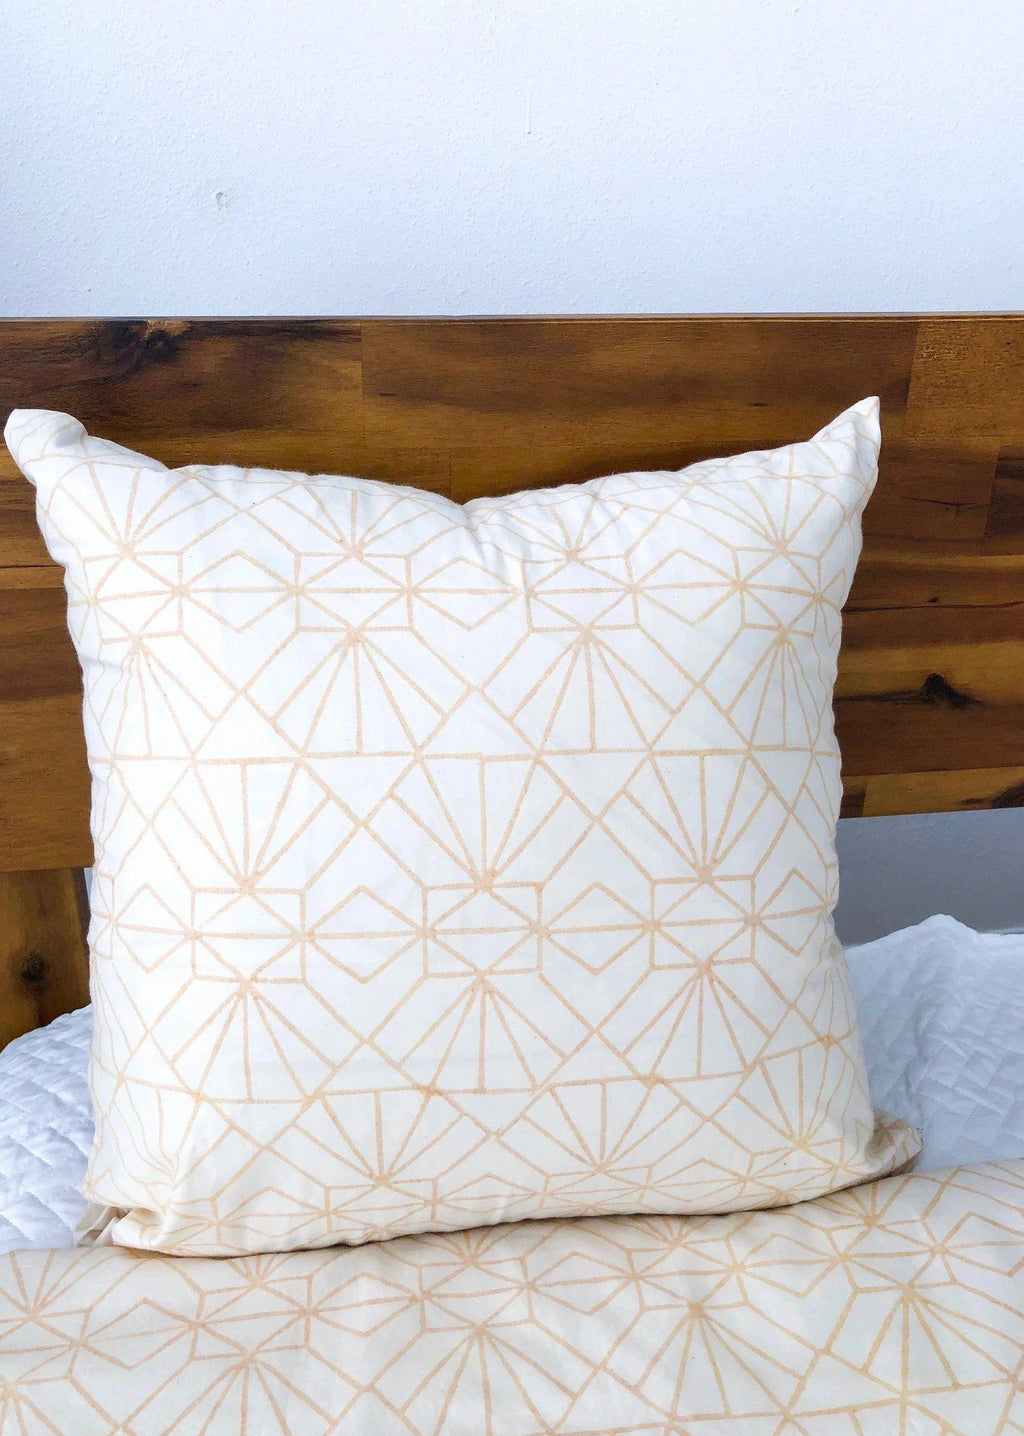 Art Deco/Baby Cacti Reversible Pillowcase in Cream + Tan